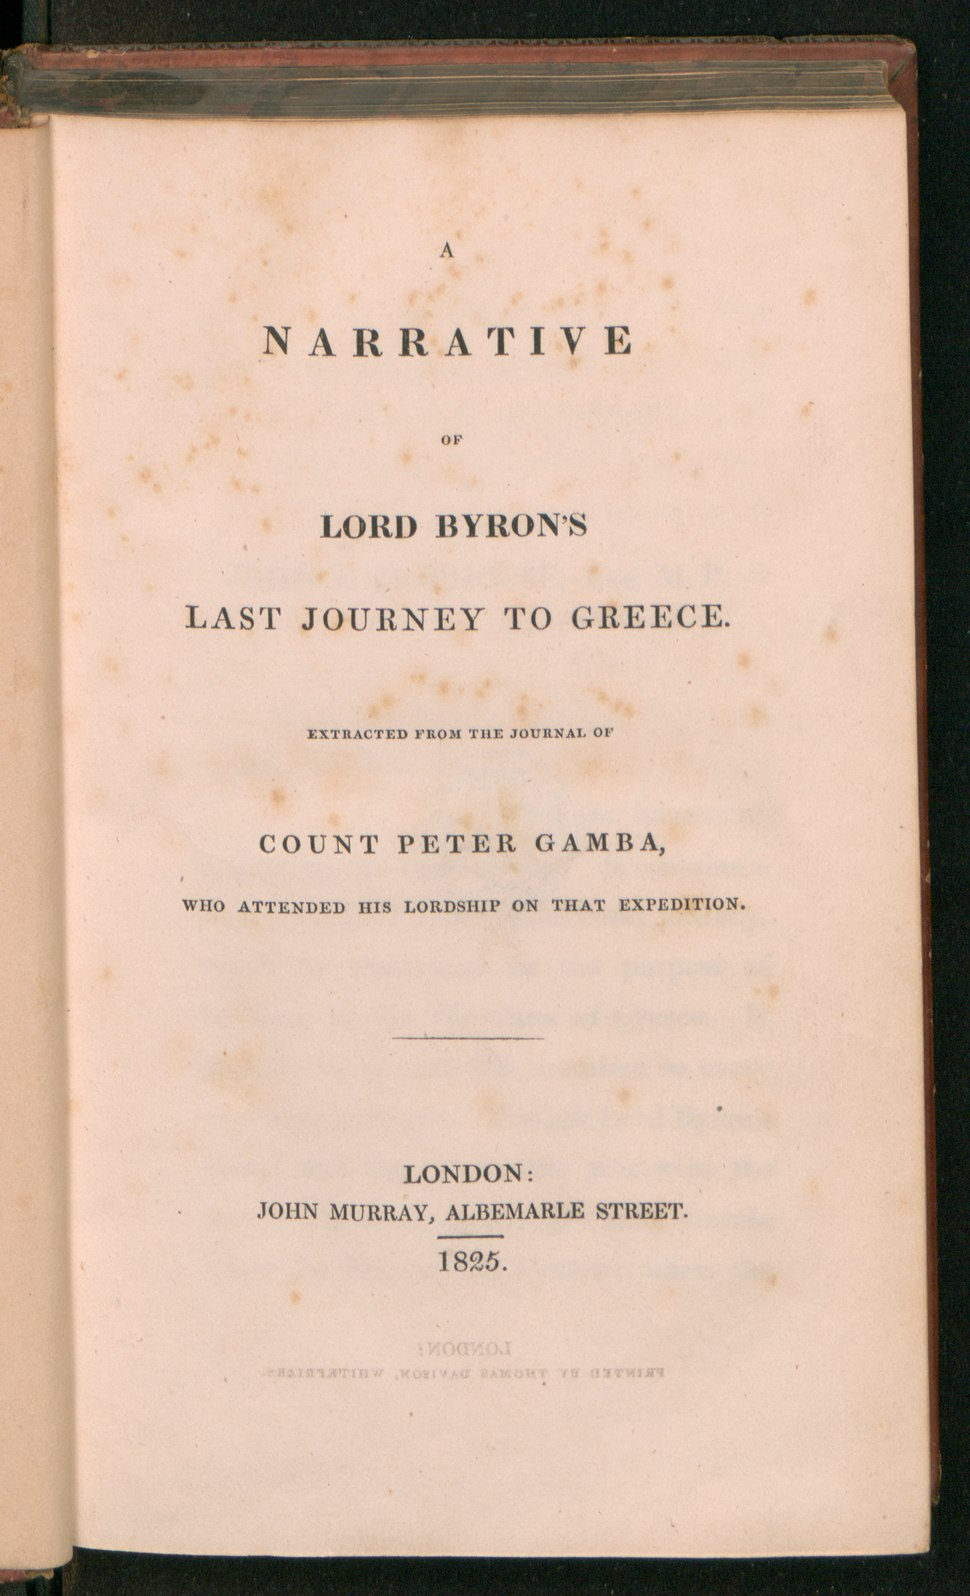 Narrative of Lord Byrons last journey to Greece